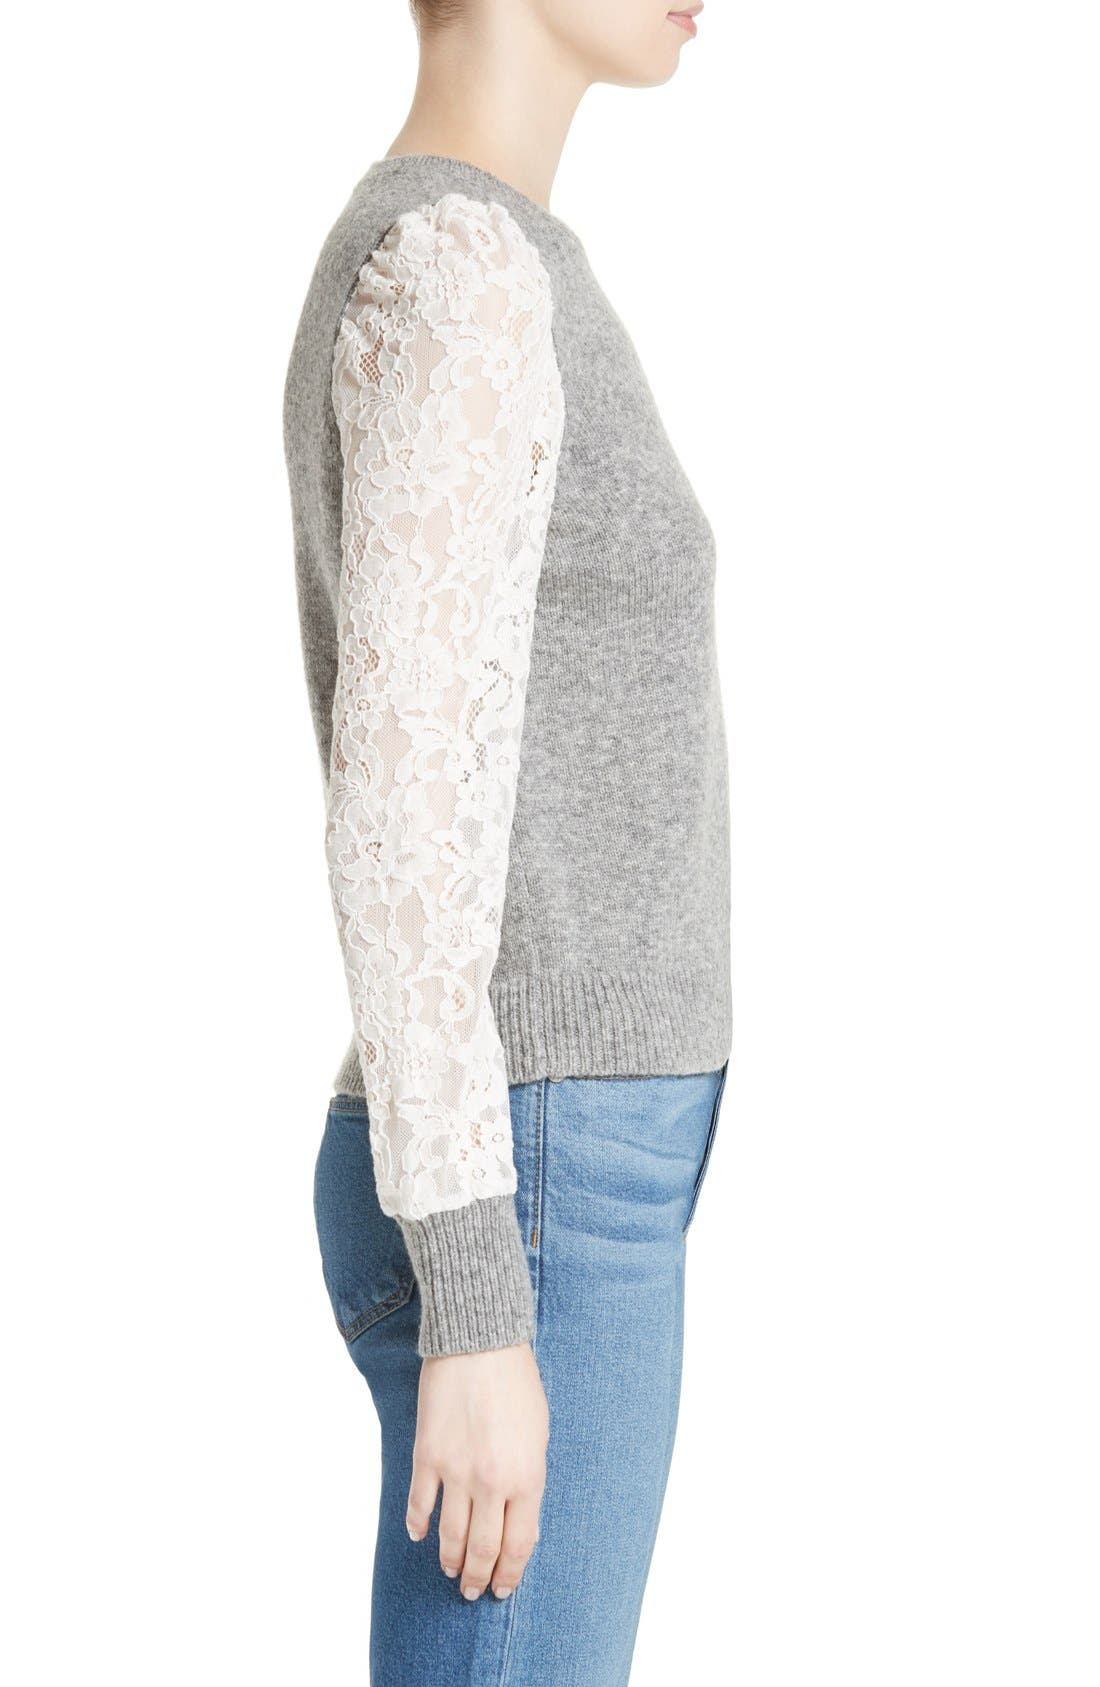 REBECCA TAYLOR,                             Lace Sleeve Sweater,                             Alternate thumbnail 7, color,                             063